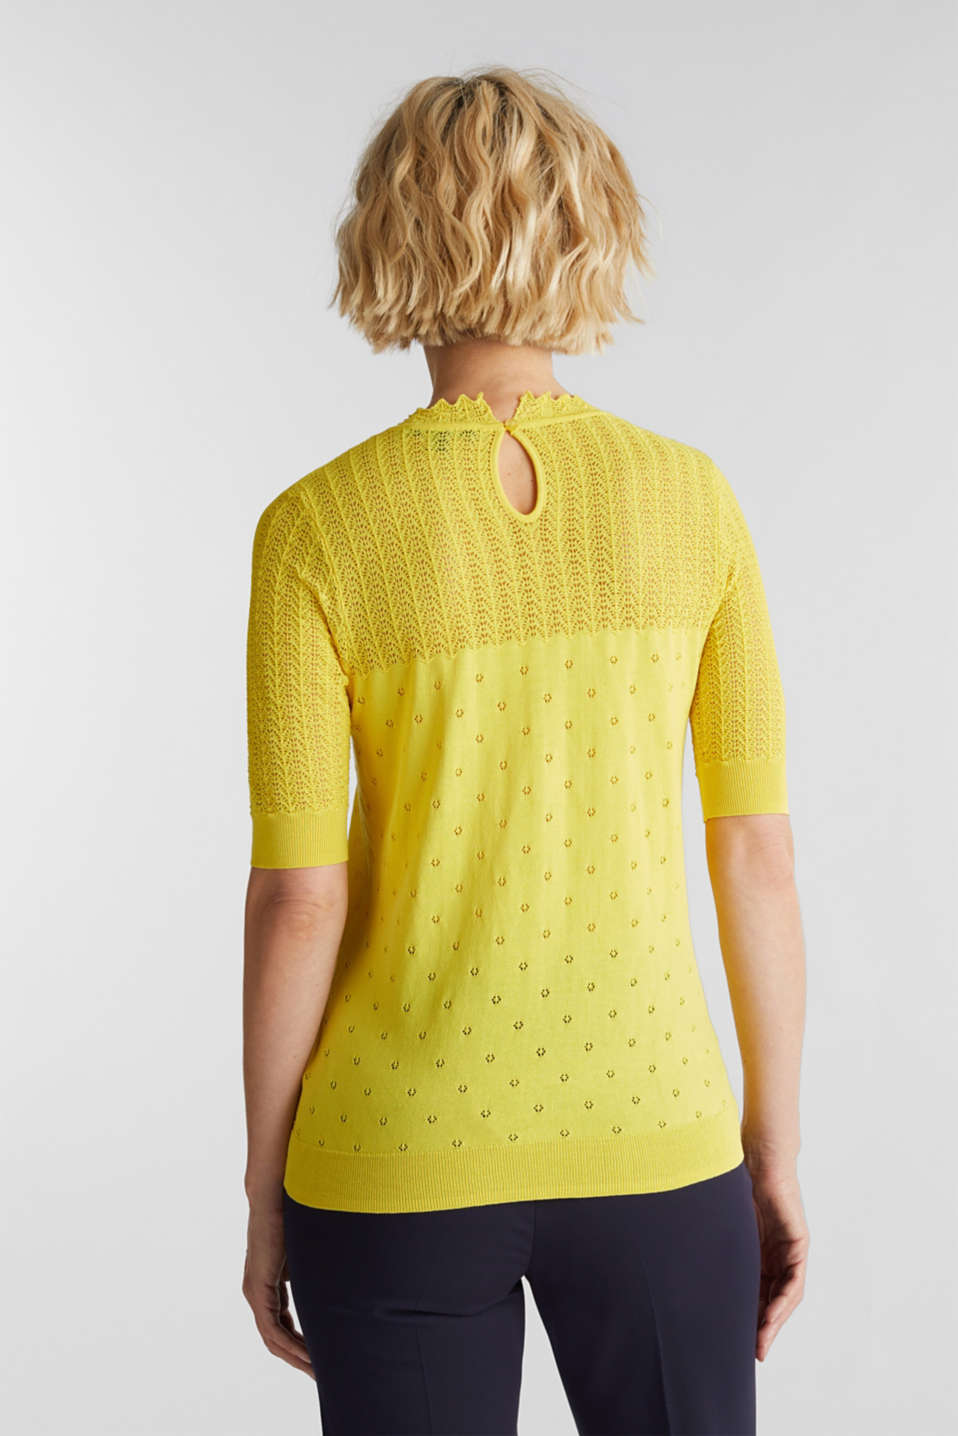 Short-sleeved jumper with an openwork pattern and lace, YELLOW, detail image number 3